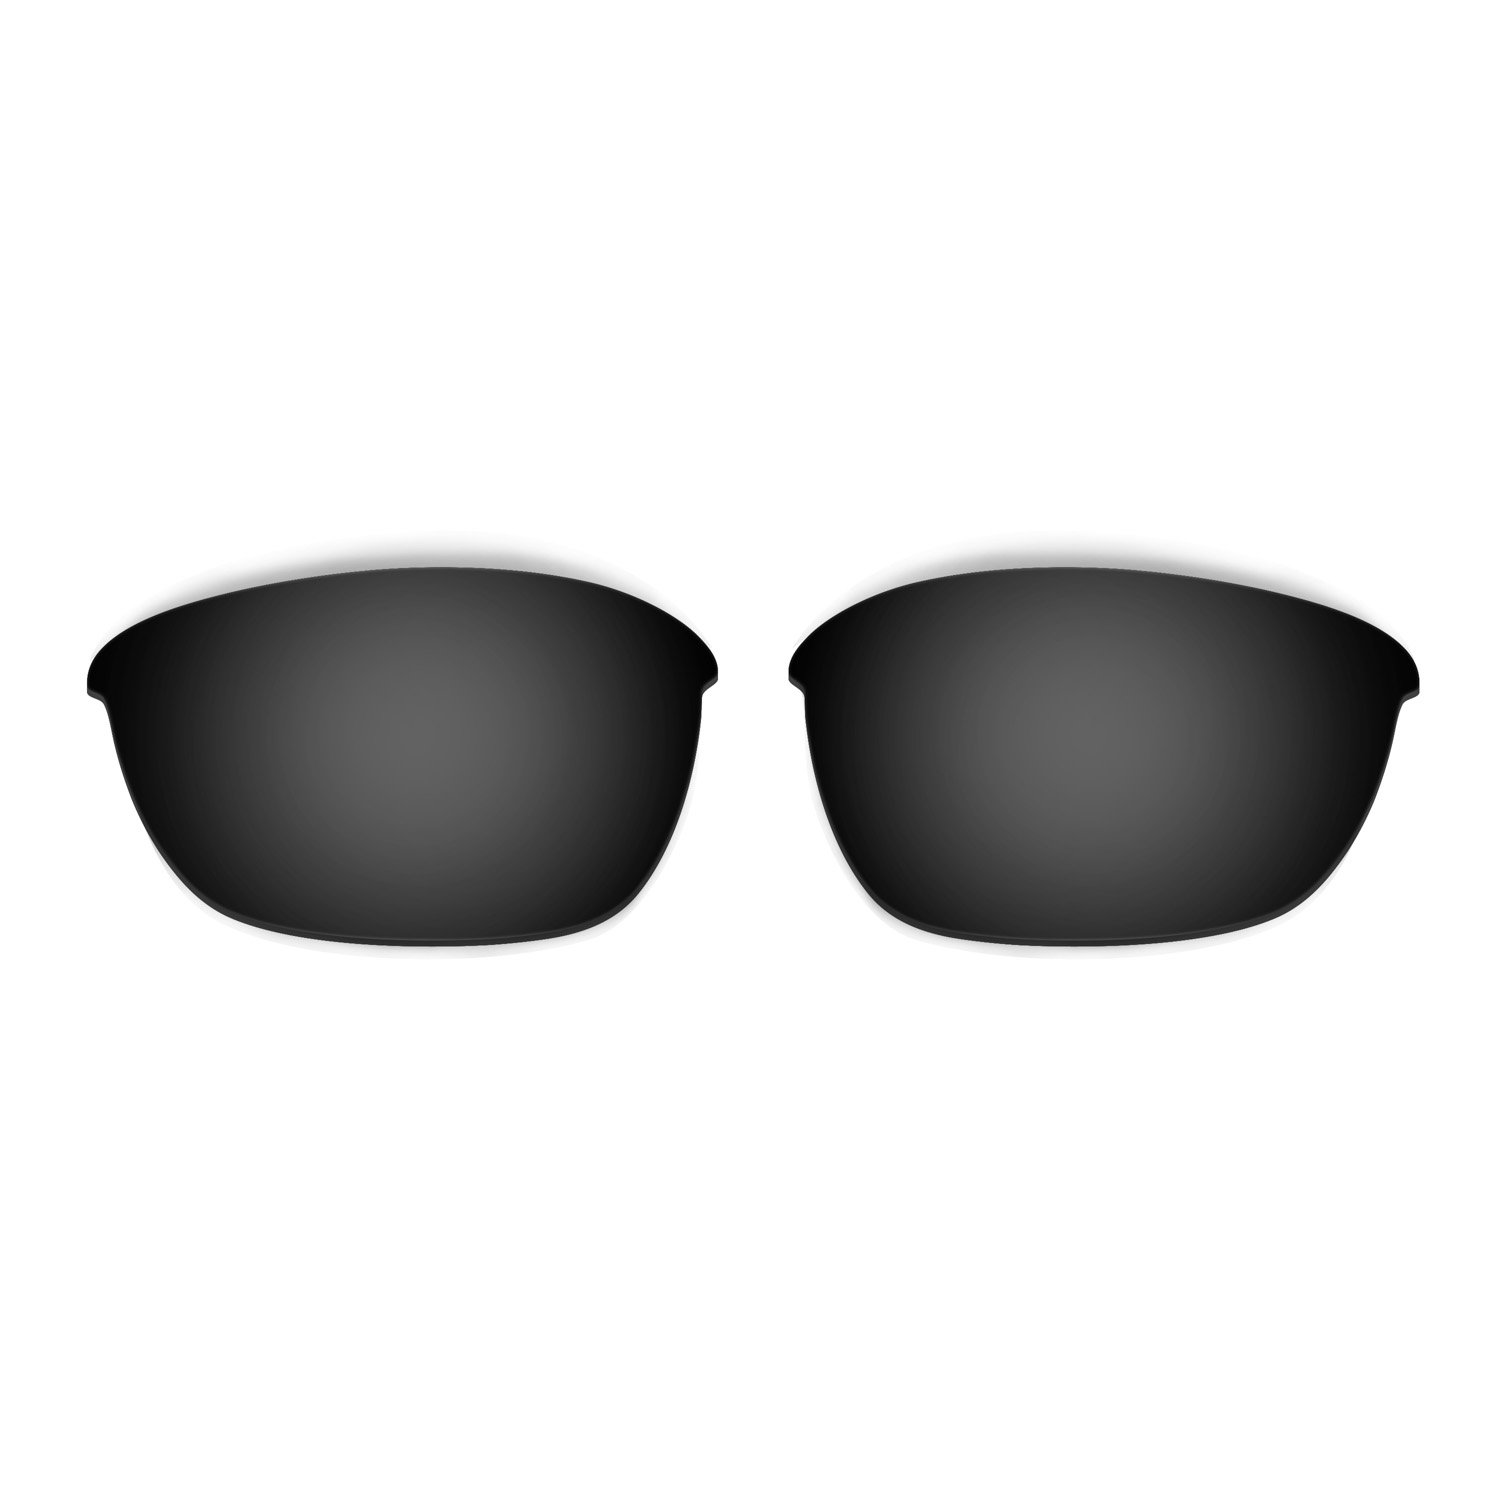 HKUCO Plus Replacement Lenses For Oakley Half Jacket - 3 pair Combo Pack xIOPNgN1